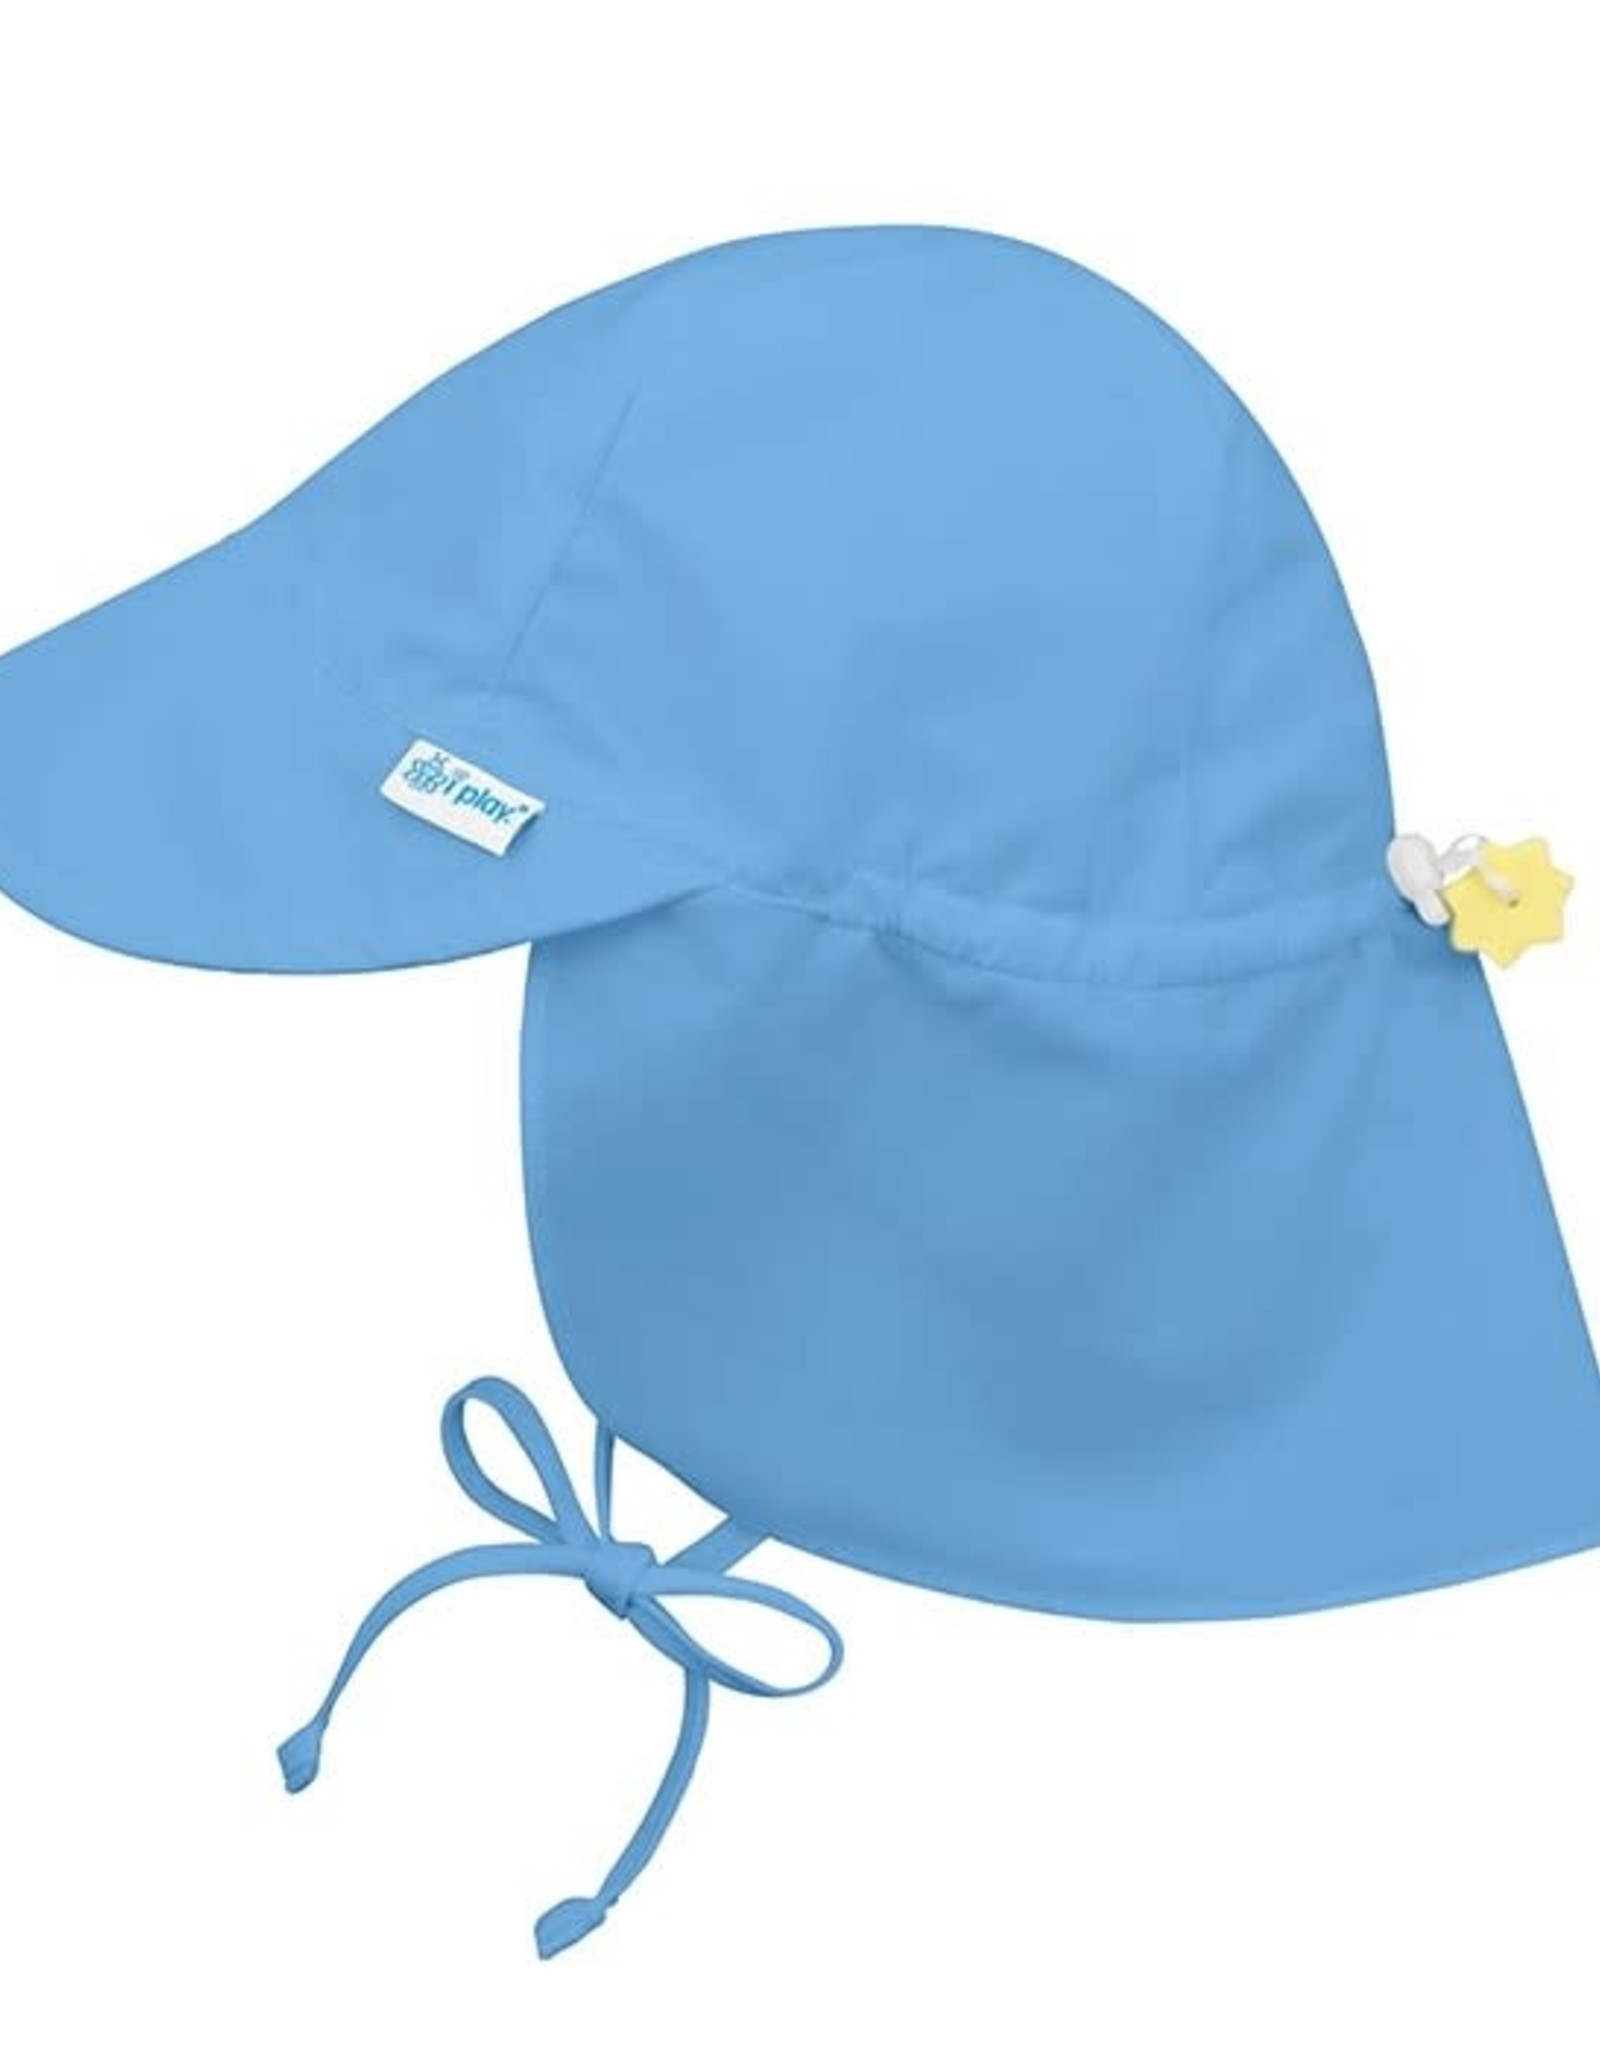 Iplay|Green Spouts iPlay Flap Sun Protection Hat